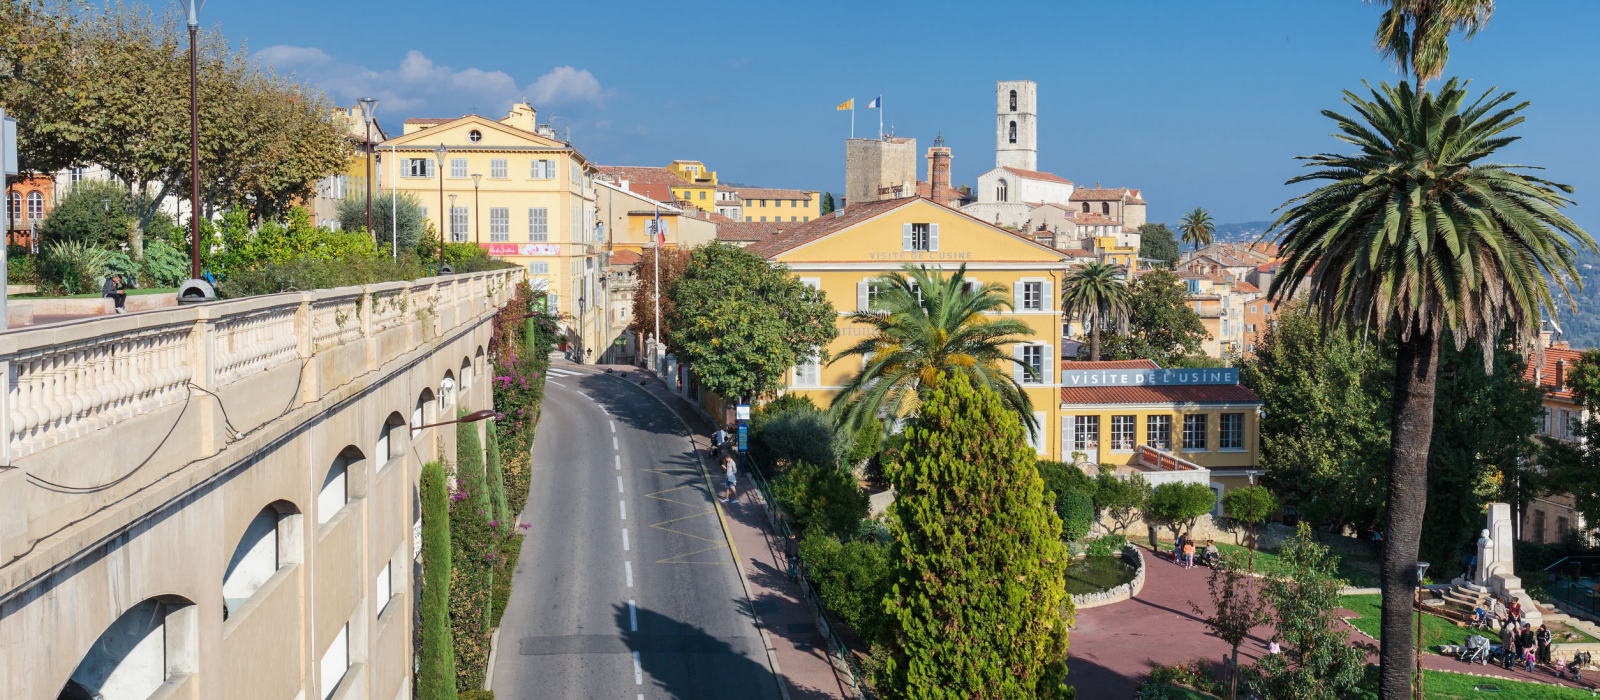 Visit the town of Grasse on the French Riviera